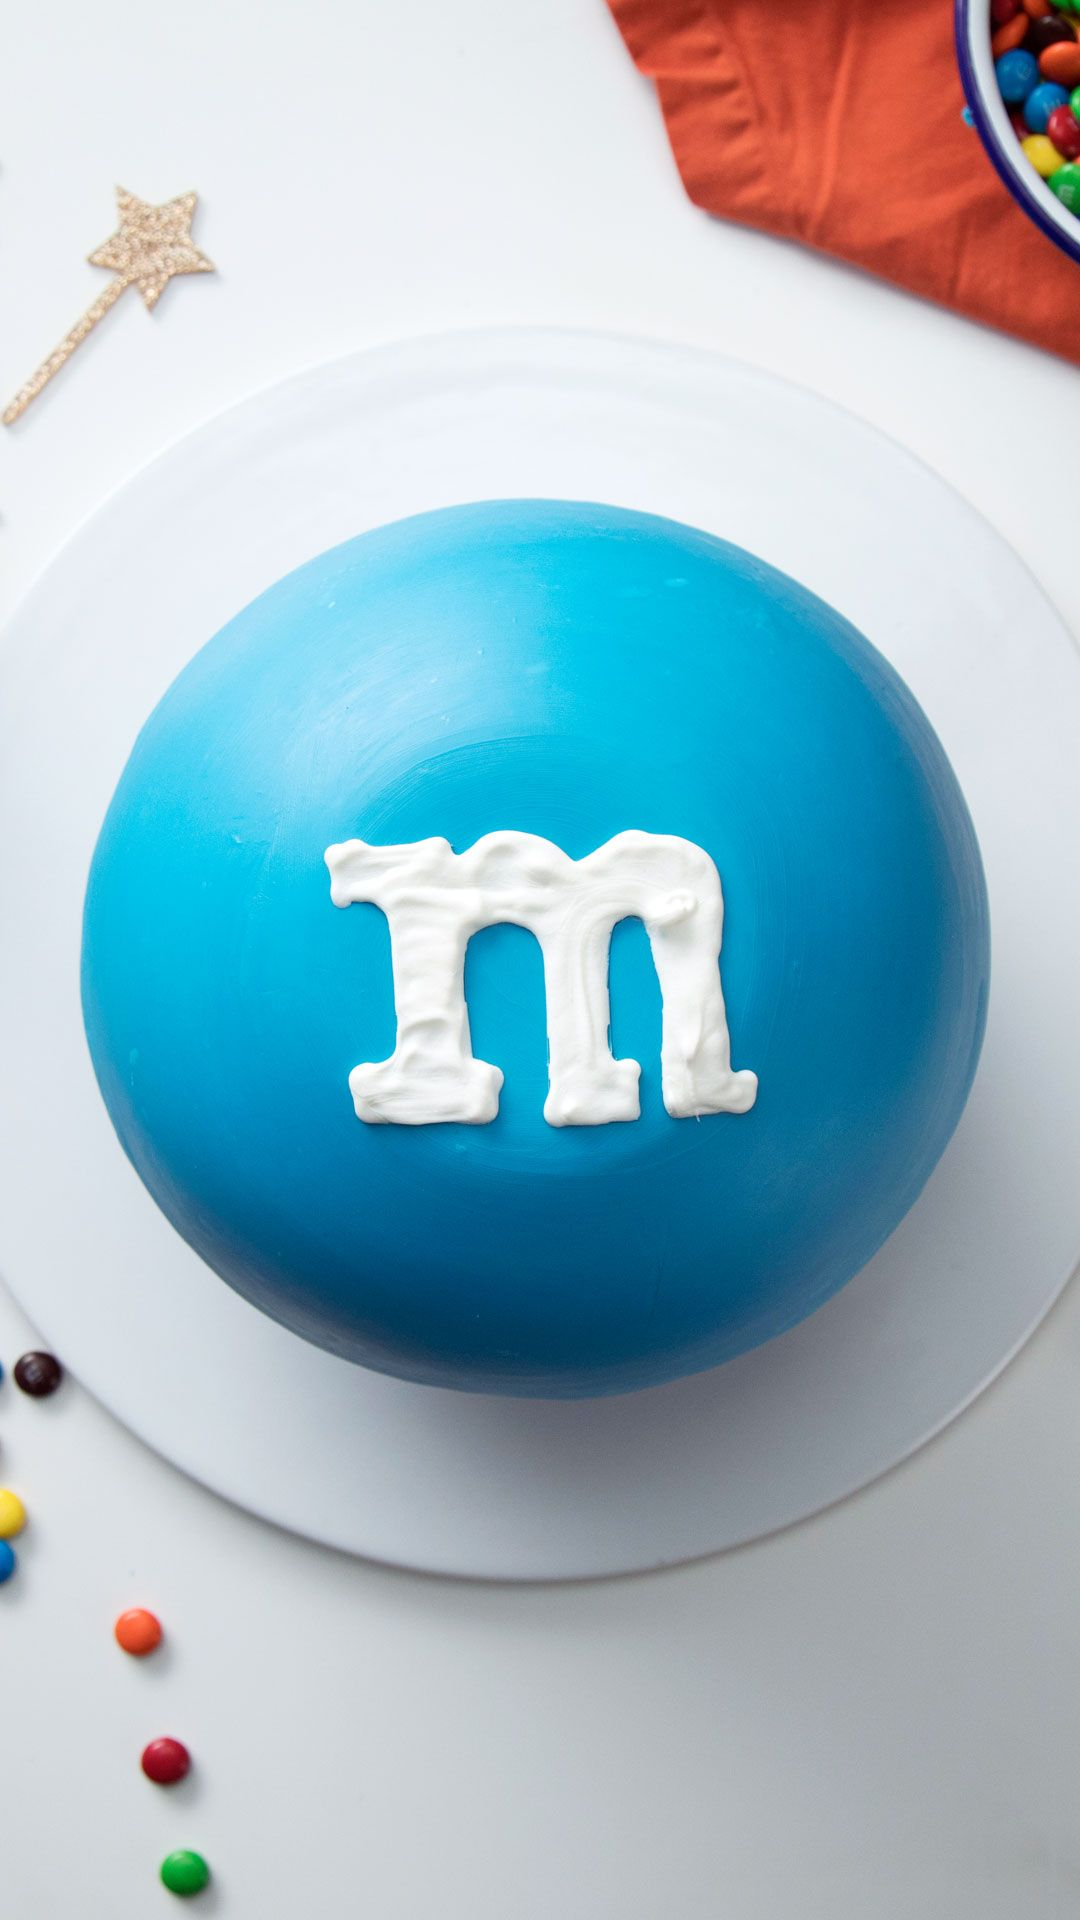 True M&M aficionados will love this embiggened M&M cake wrapped in a candy shell and stuffed with even more M&Ms.